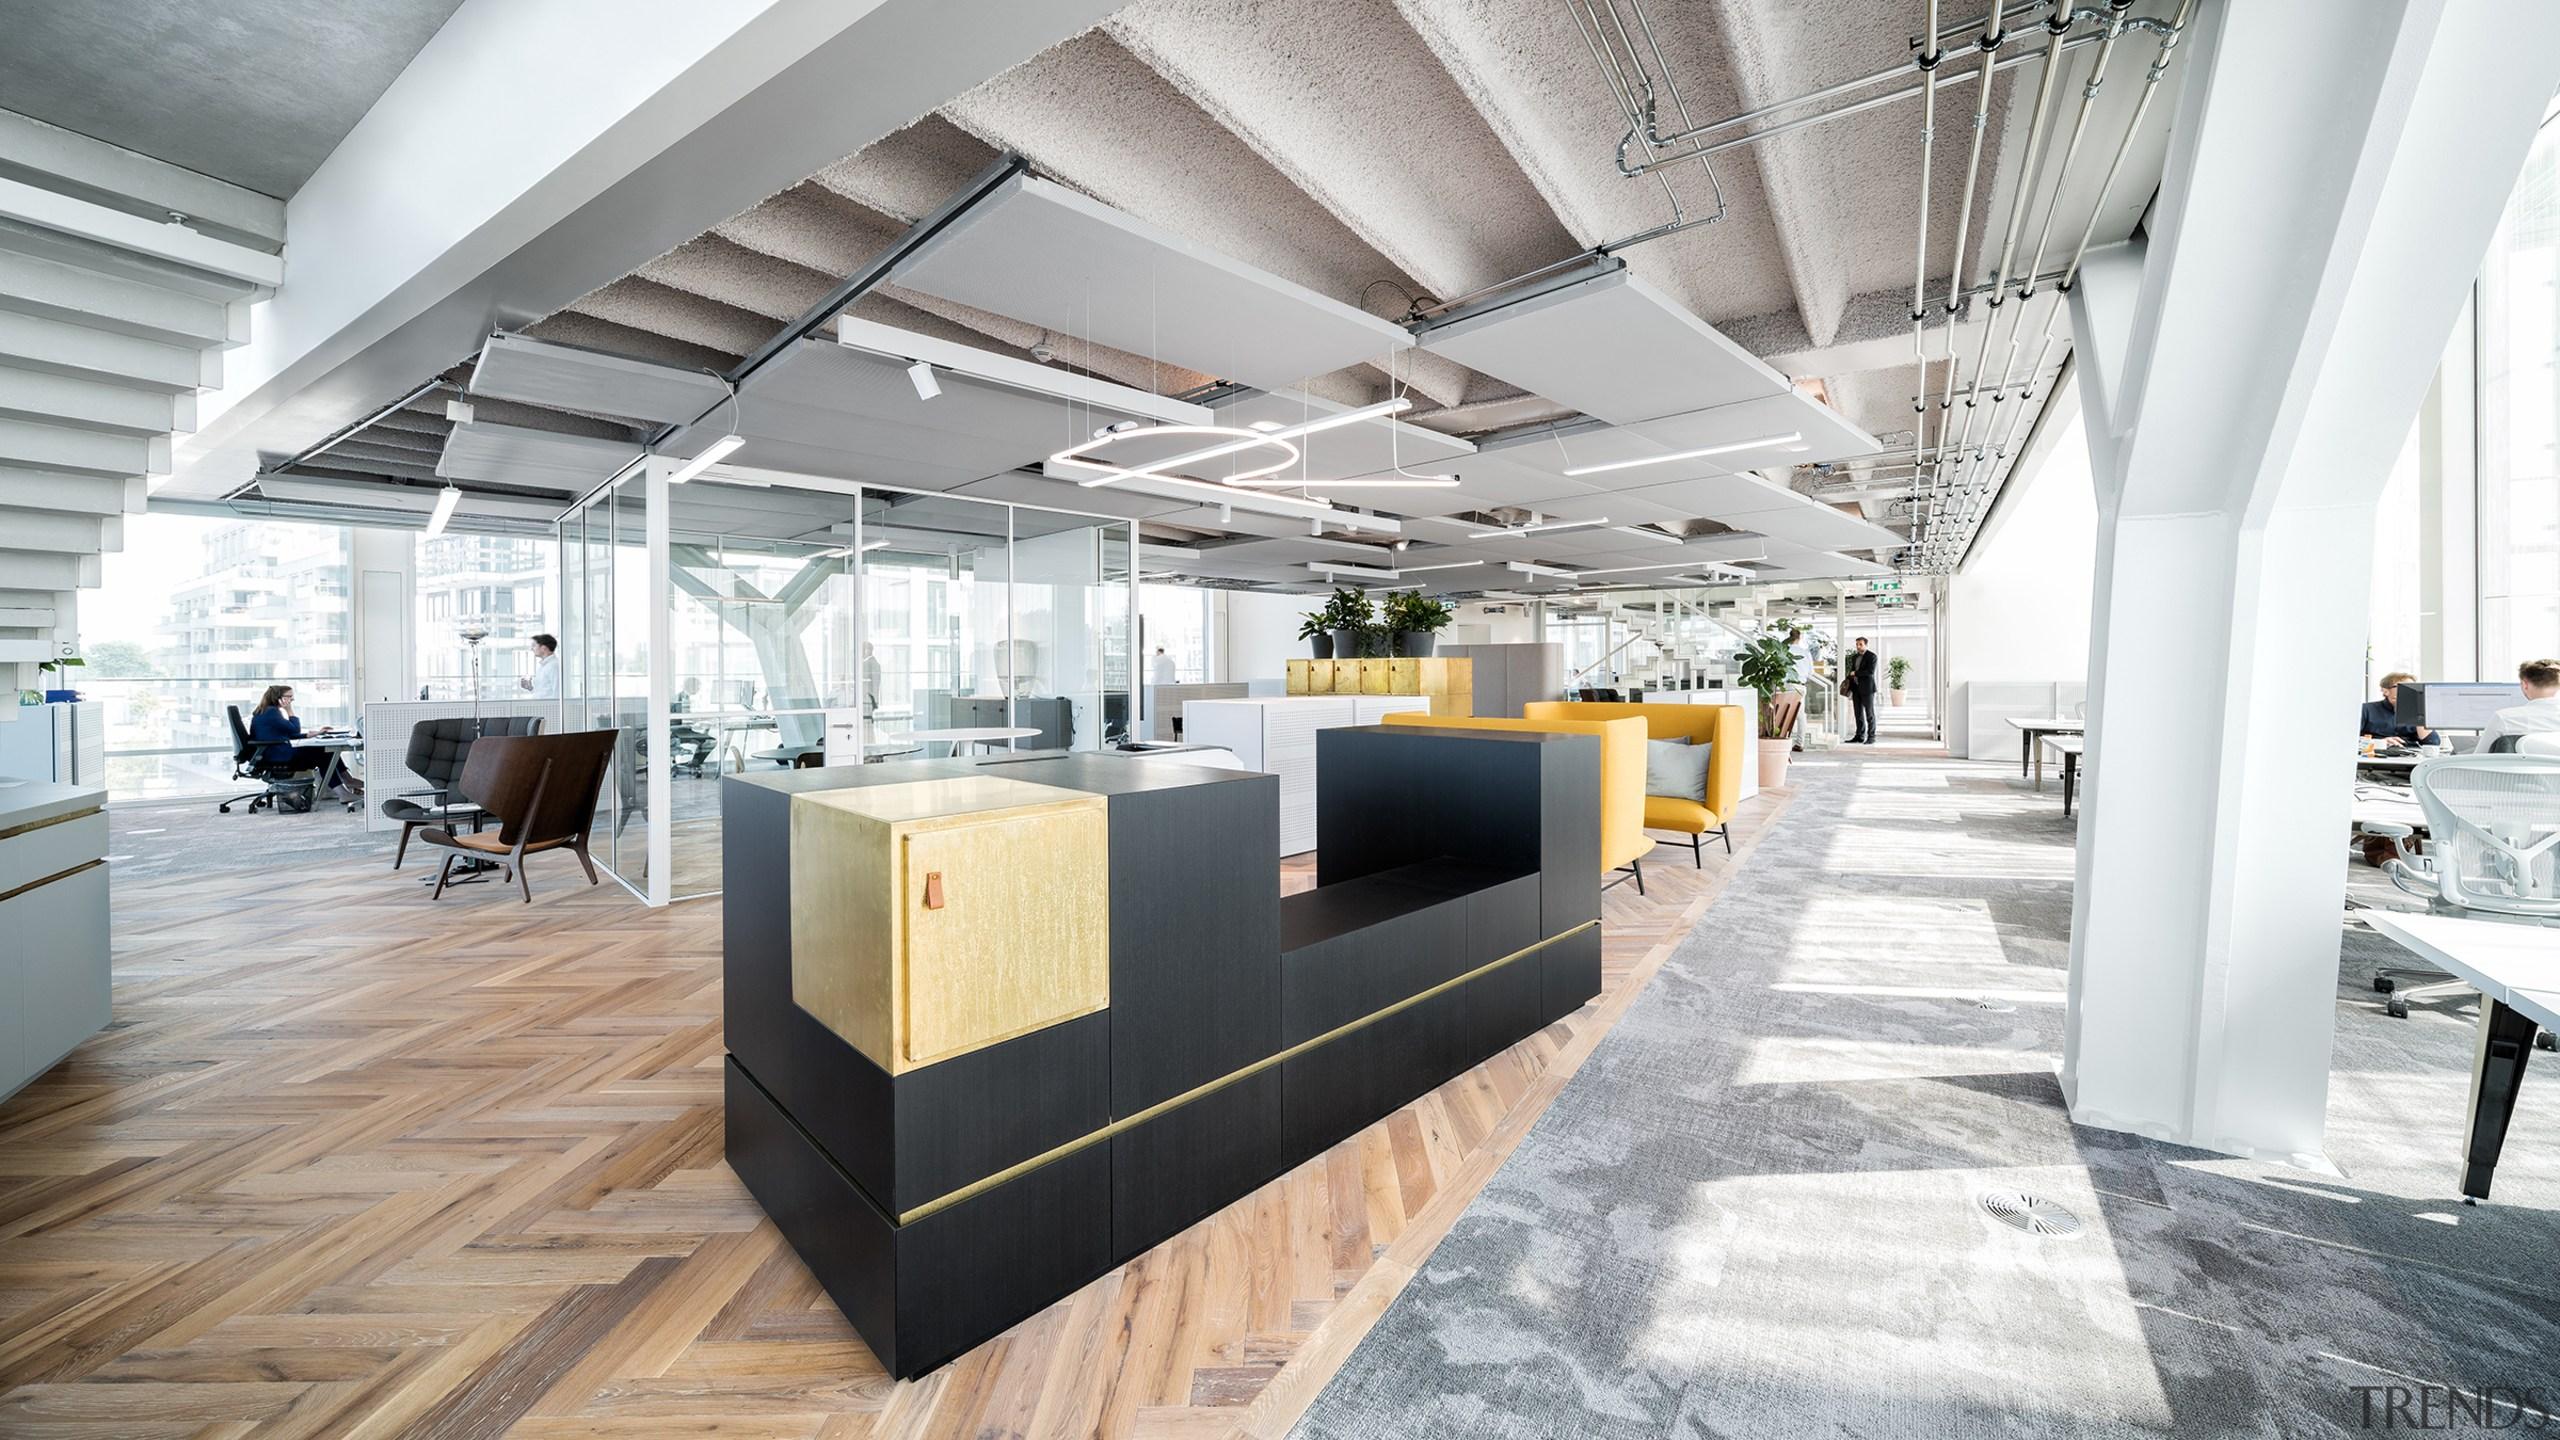 All activities in the ground-breaking offices are positioned architecture, building, ceiling, daylighting, design, floor, flooring, furniture, house, interior design, lobby, loft, material property, office, property, real estate, room, table, white